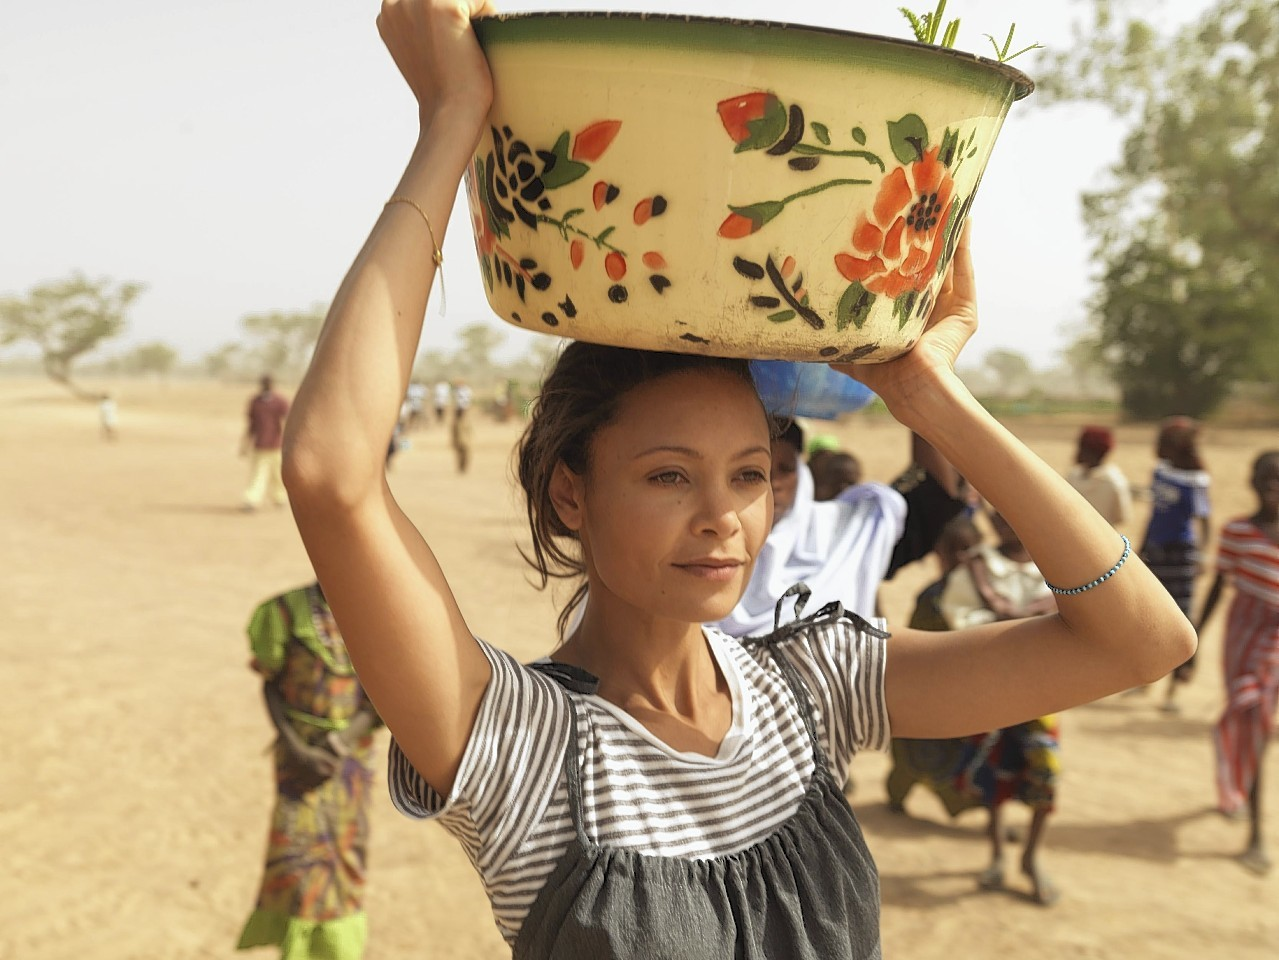 Actress Thandie Newton has already helped bring clean water to villagers in Mali